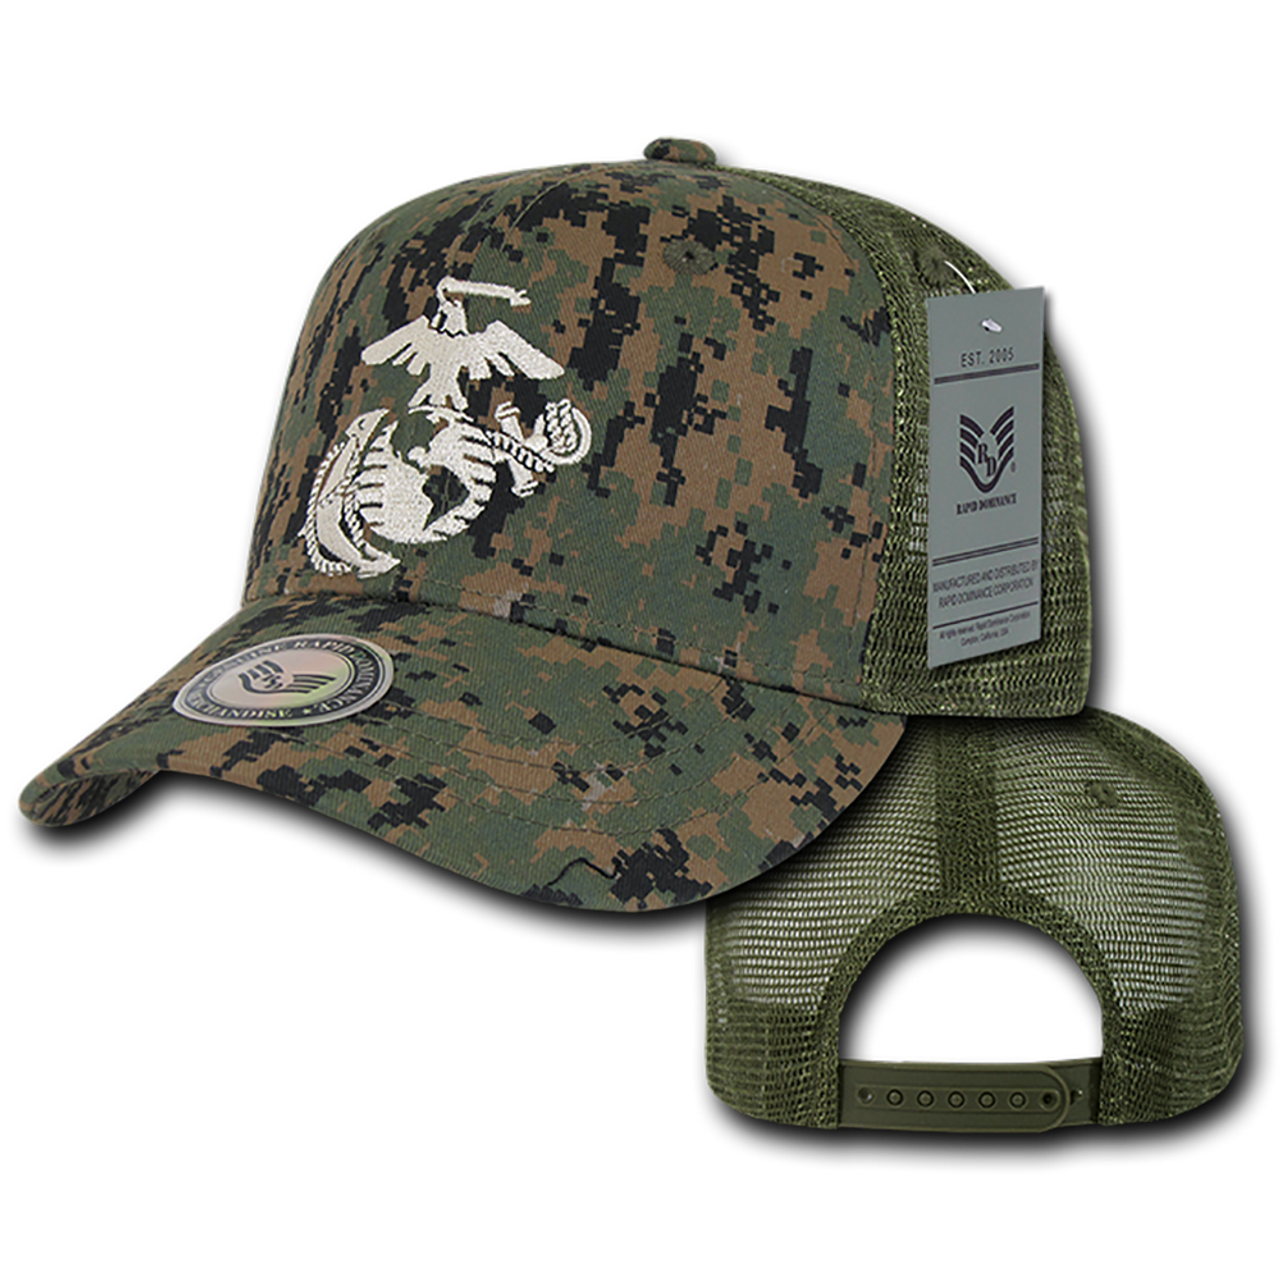 c68714d0d65 ... S77 - U.S. Marine Corps Cap - Back to Basics - Trucker Mesh - MCU  Digital ...